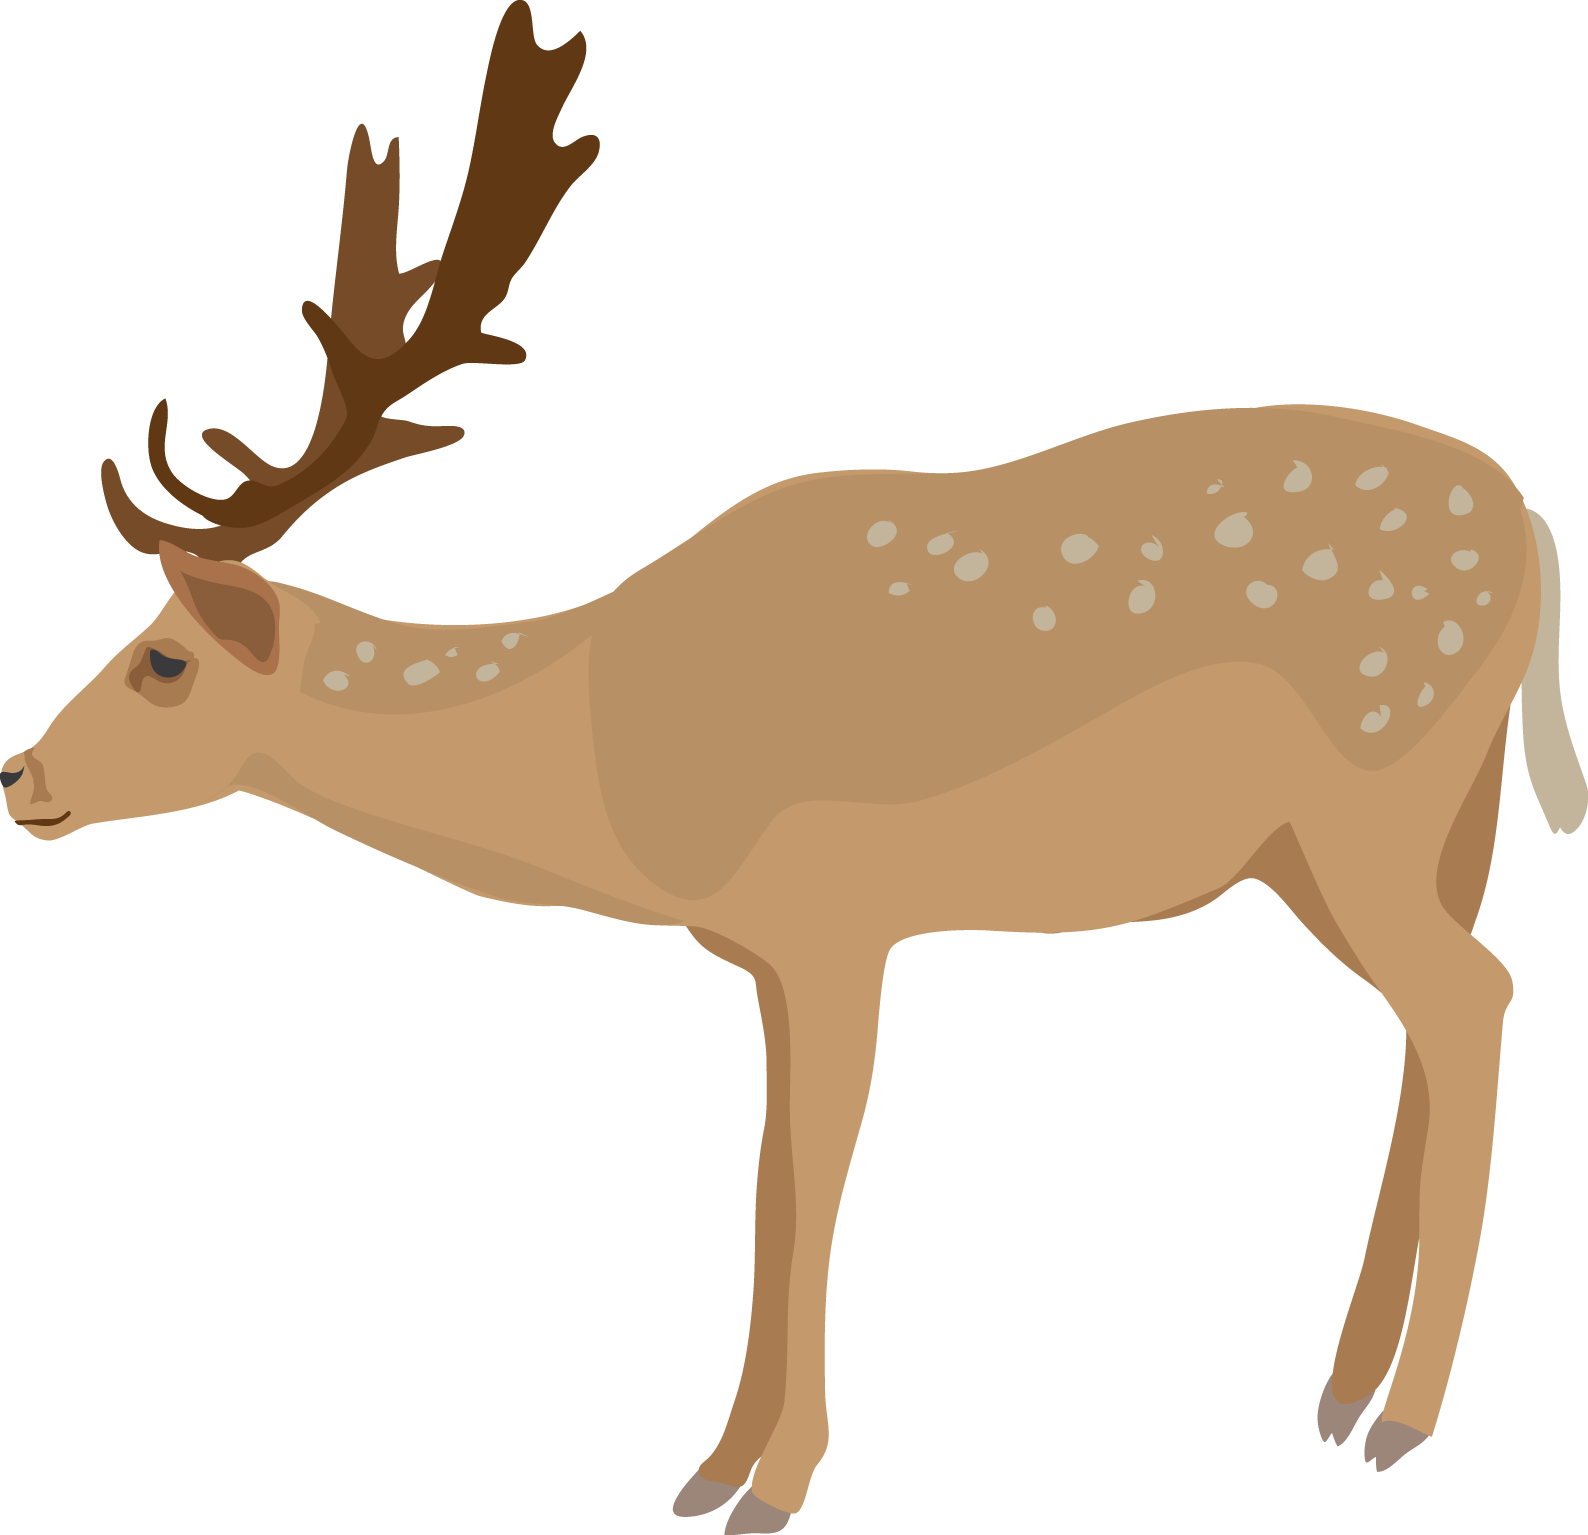 Cute baby deer clipart free images